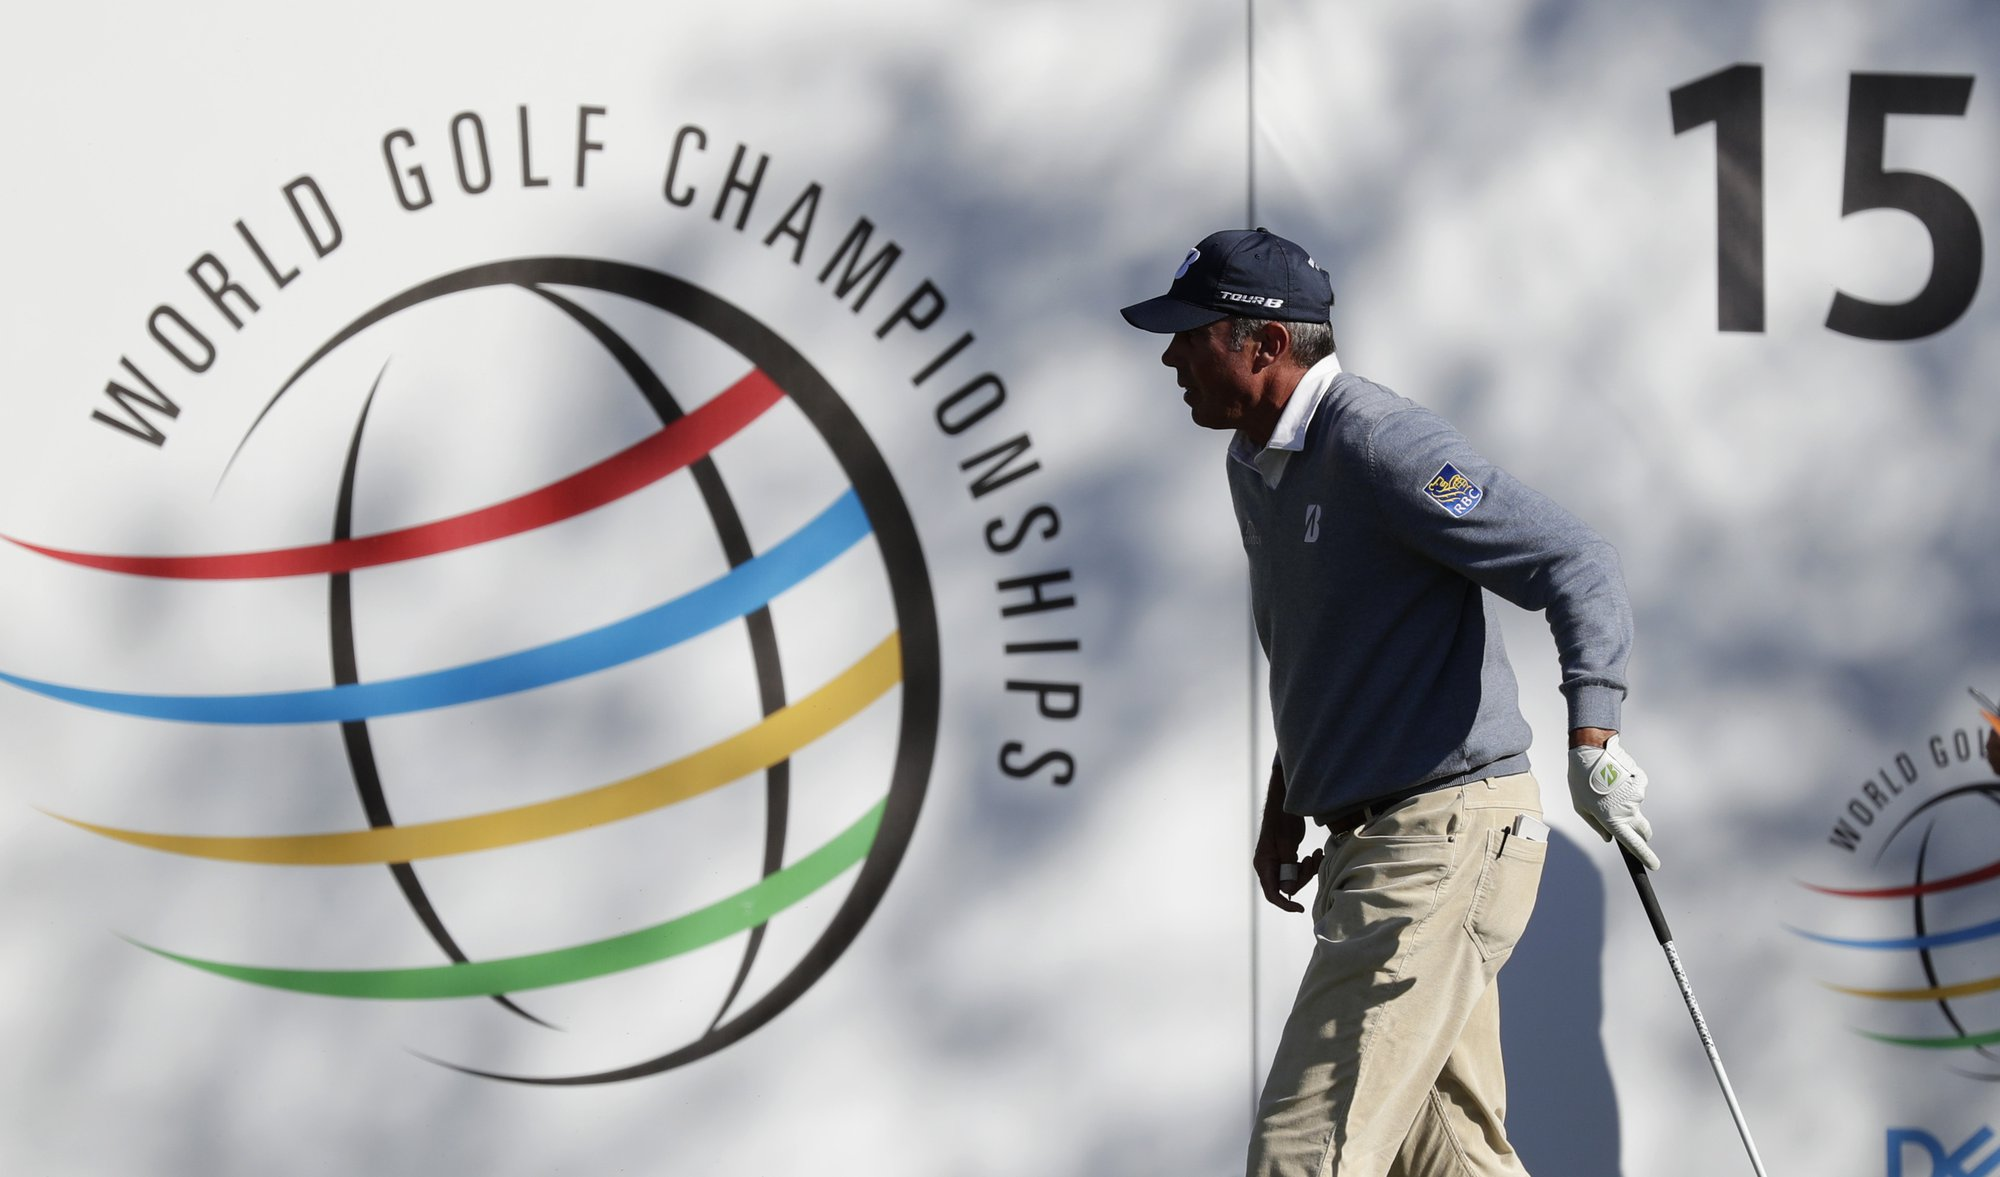 Matt Kuchar walks off of the the 16th tee box after hitting his drive during the finals against Kevin Kisner at the Dell Technologies Match Play Championship golf tournament, Sunday, March 31, 2019, in Austin, Texas. Kisner won the match. (AP Photo/Eric Gay)